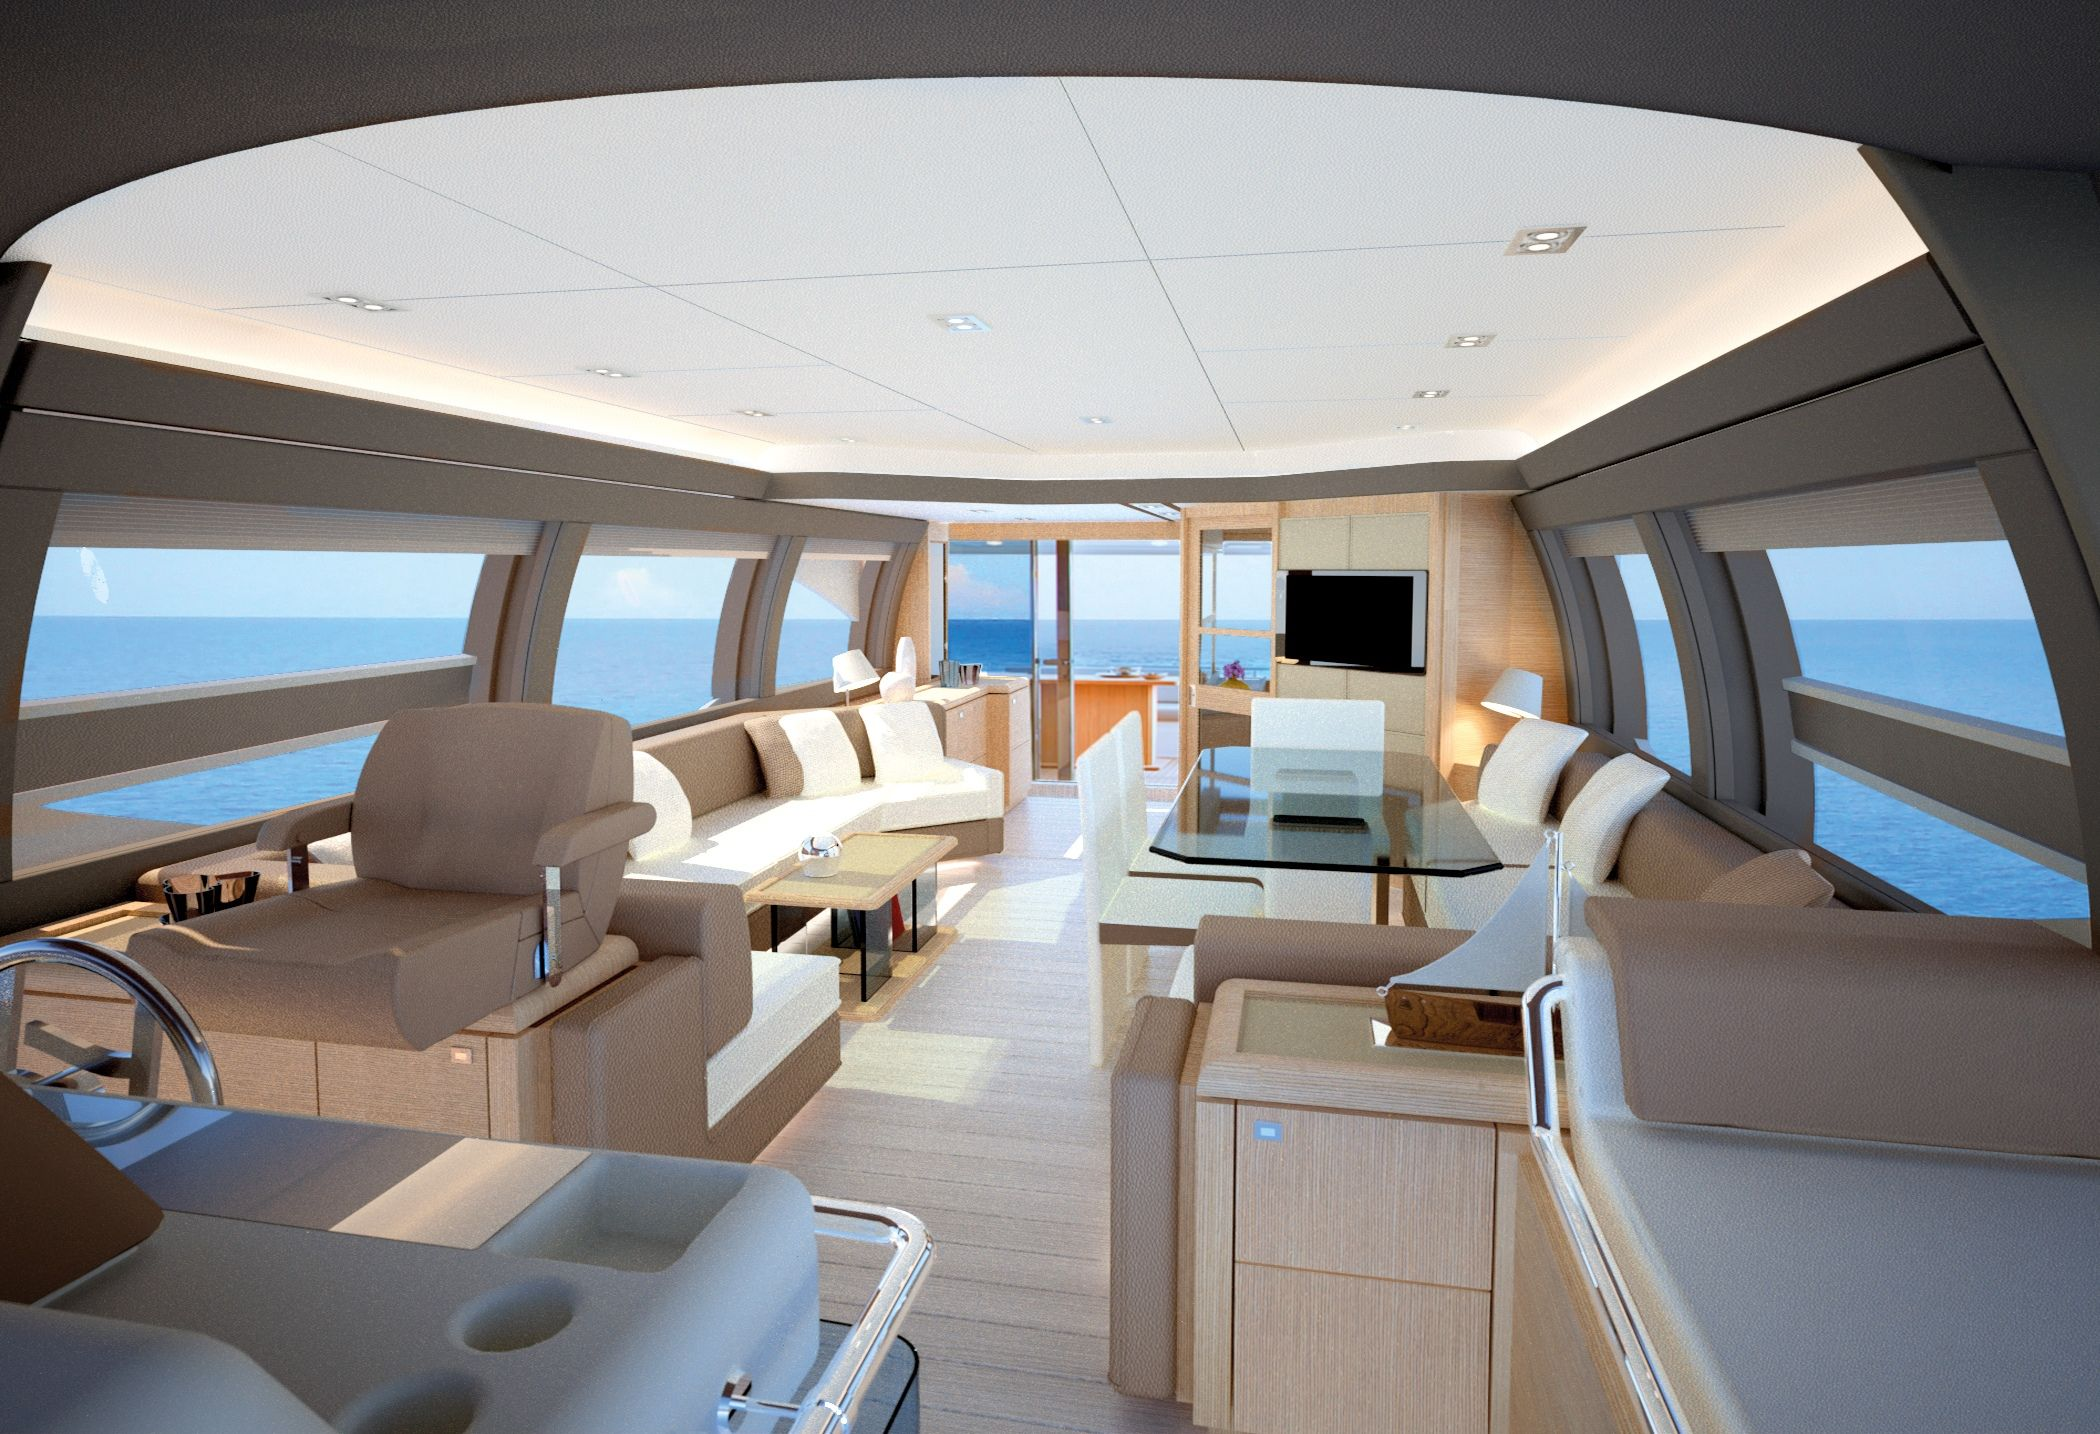 Interiors of luxury yachts ferretti 690 motor yacht for Innenraum designer programm